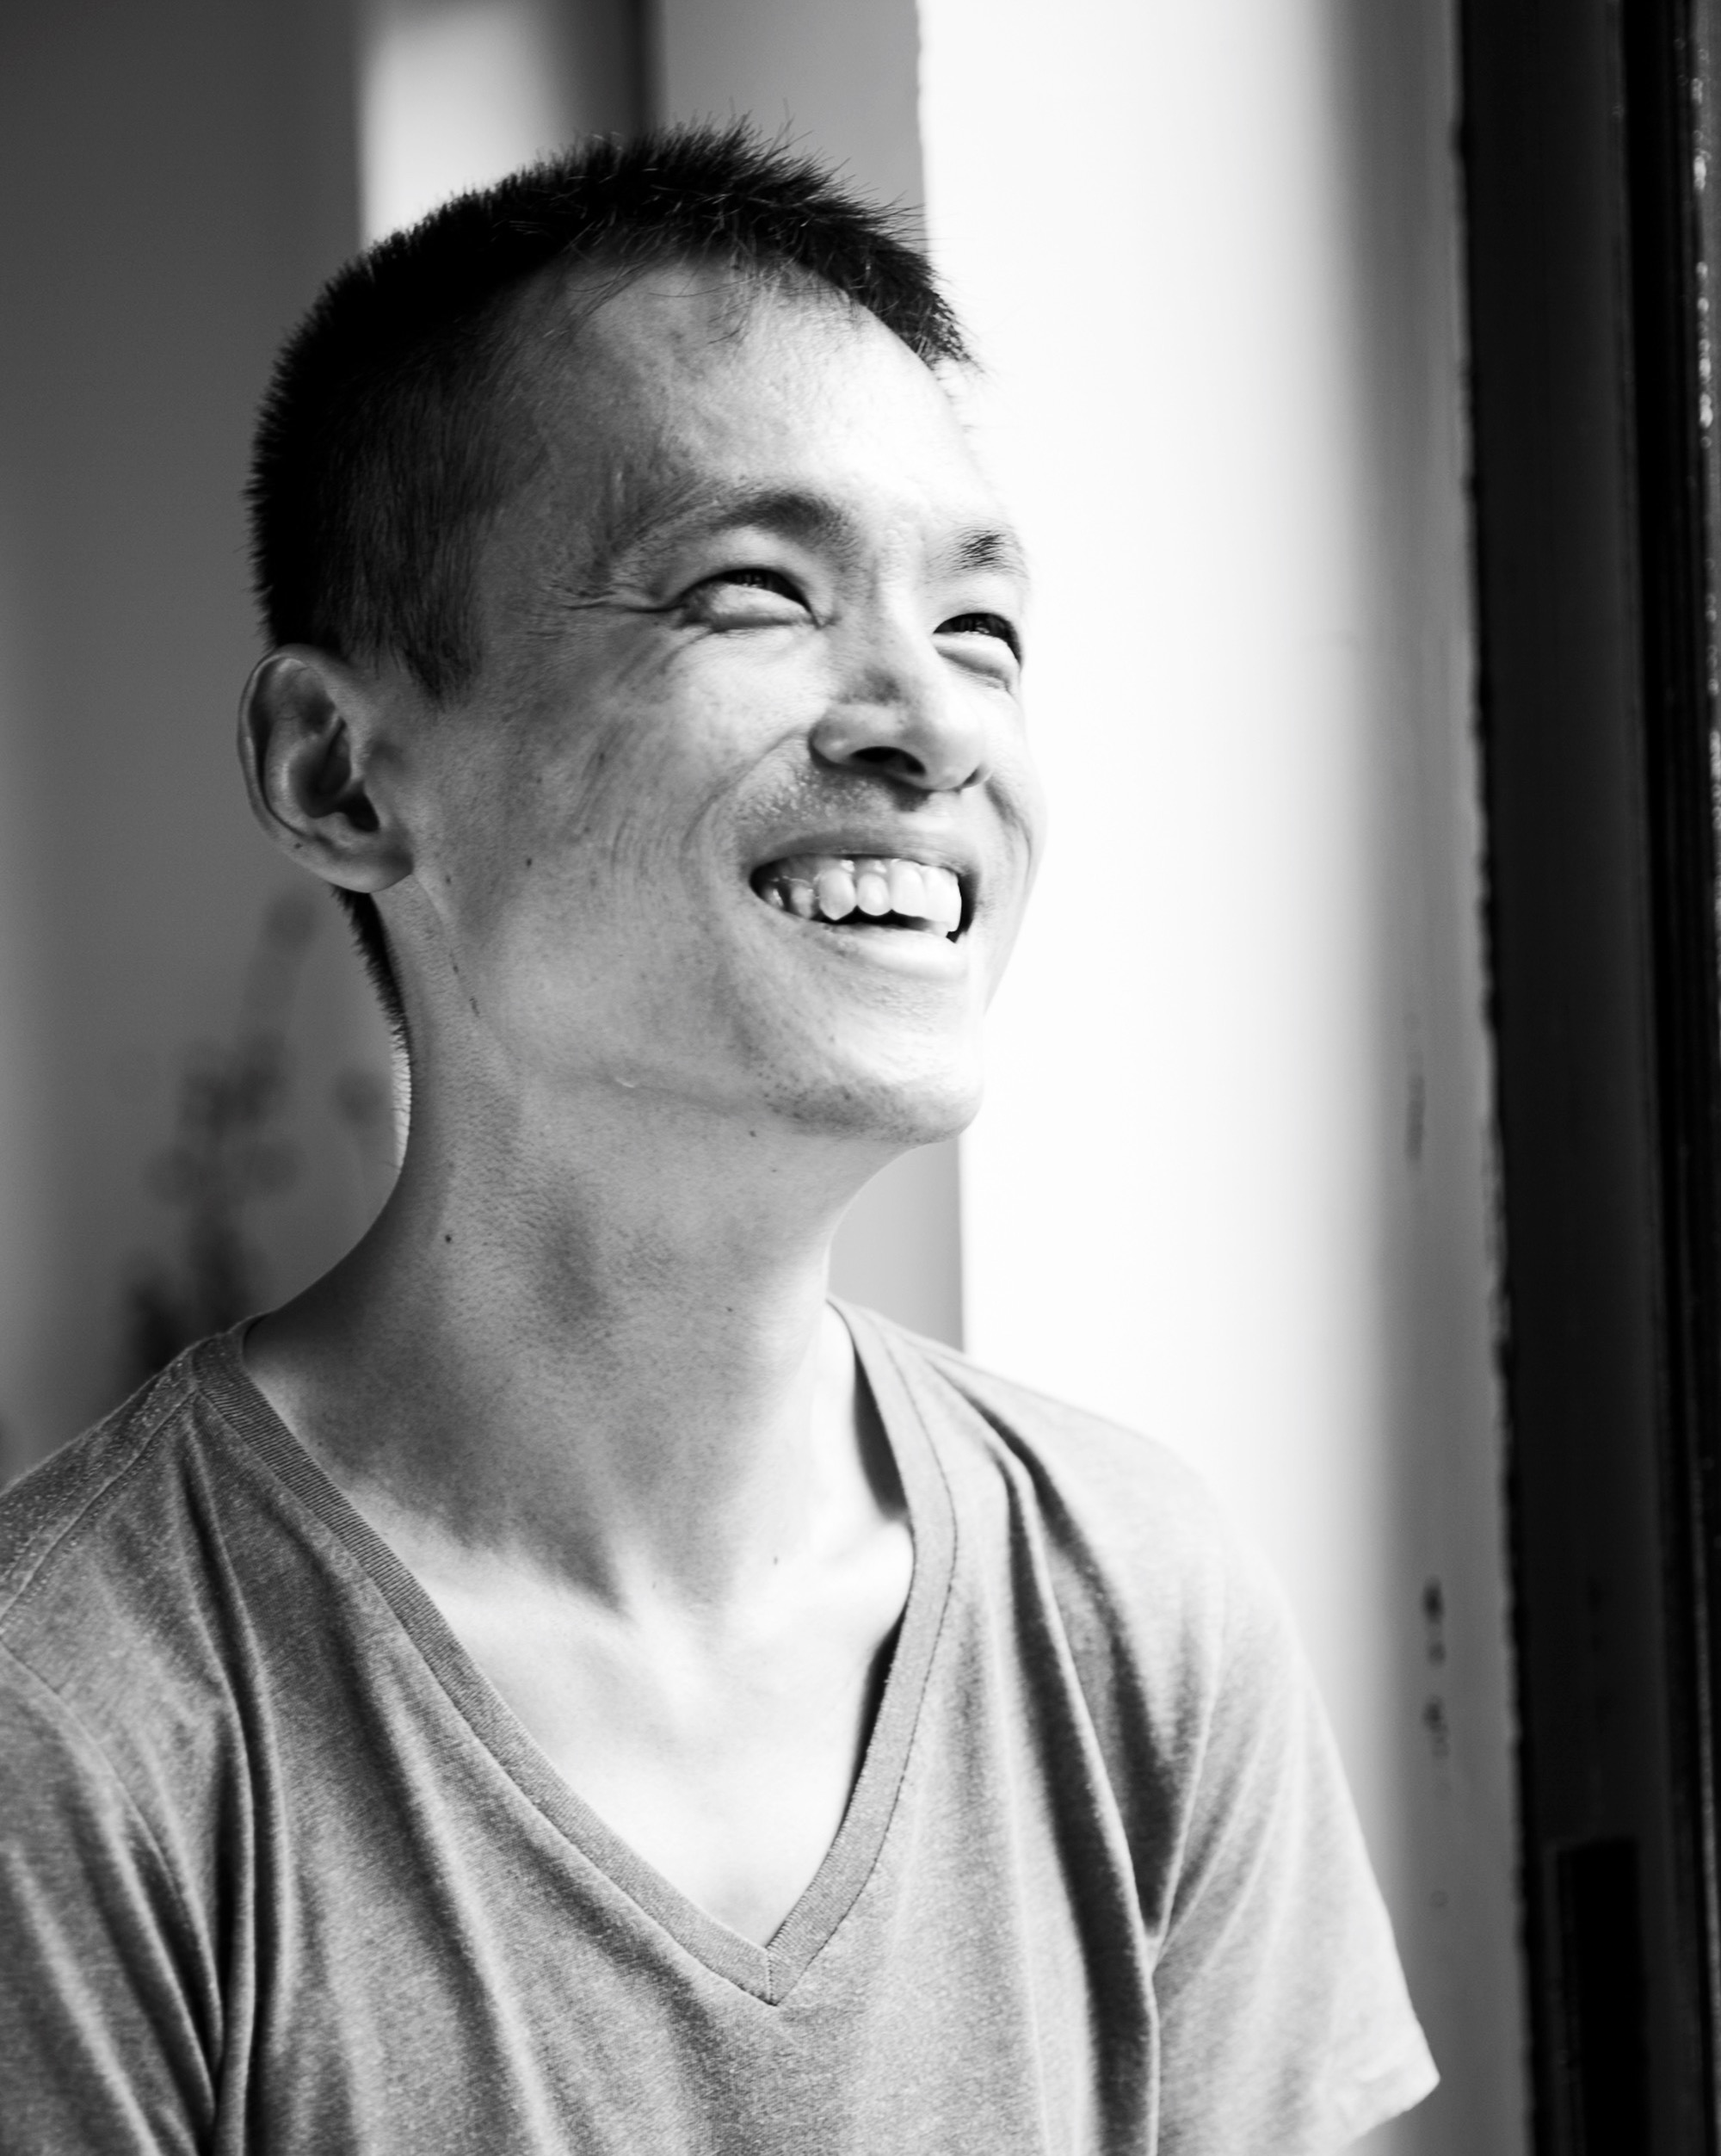 Cyril Wong  is a dark balloon afloat between dank places, and sometimes leaks poems and little fictions into the atmosphere. (Photo credit: The Mindful Company)